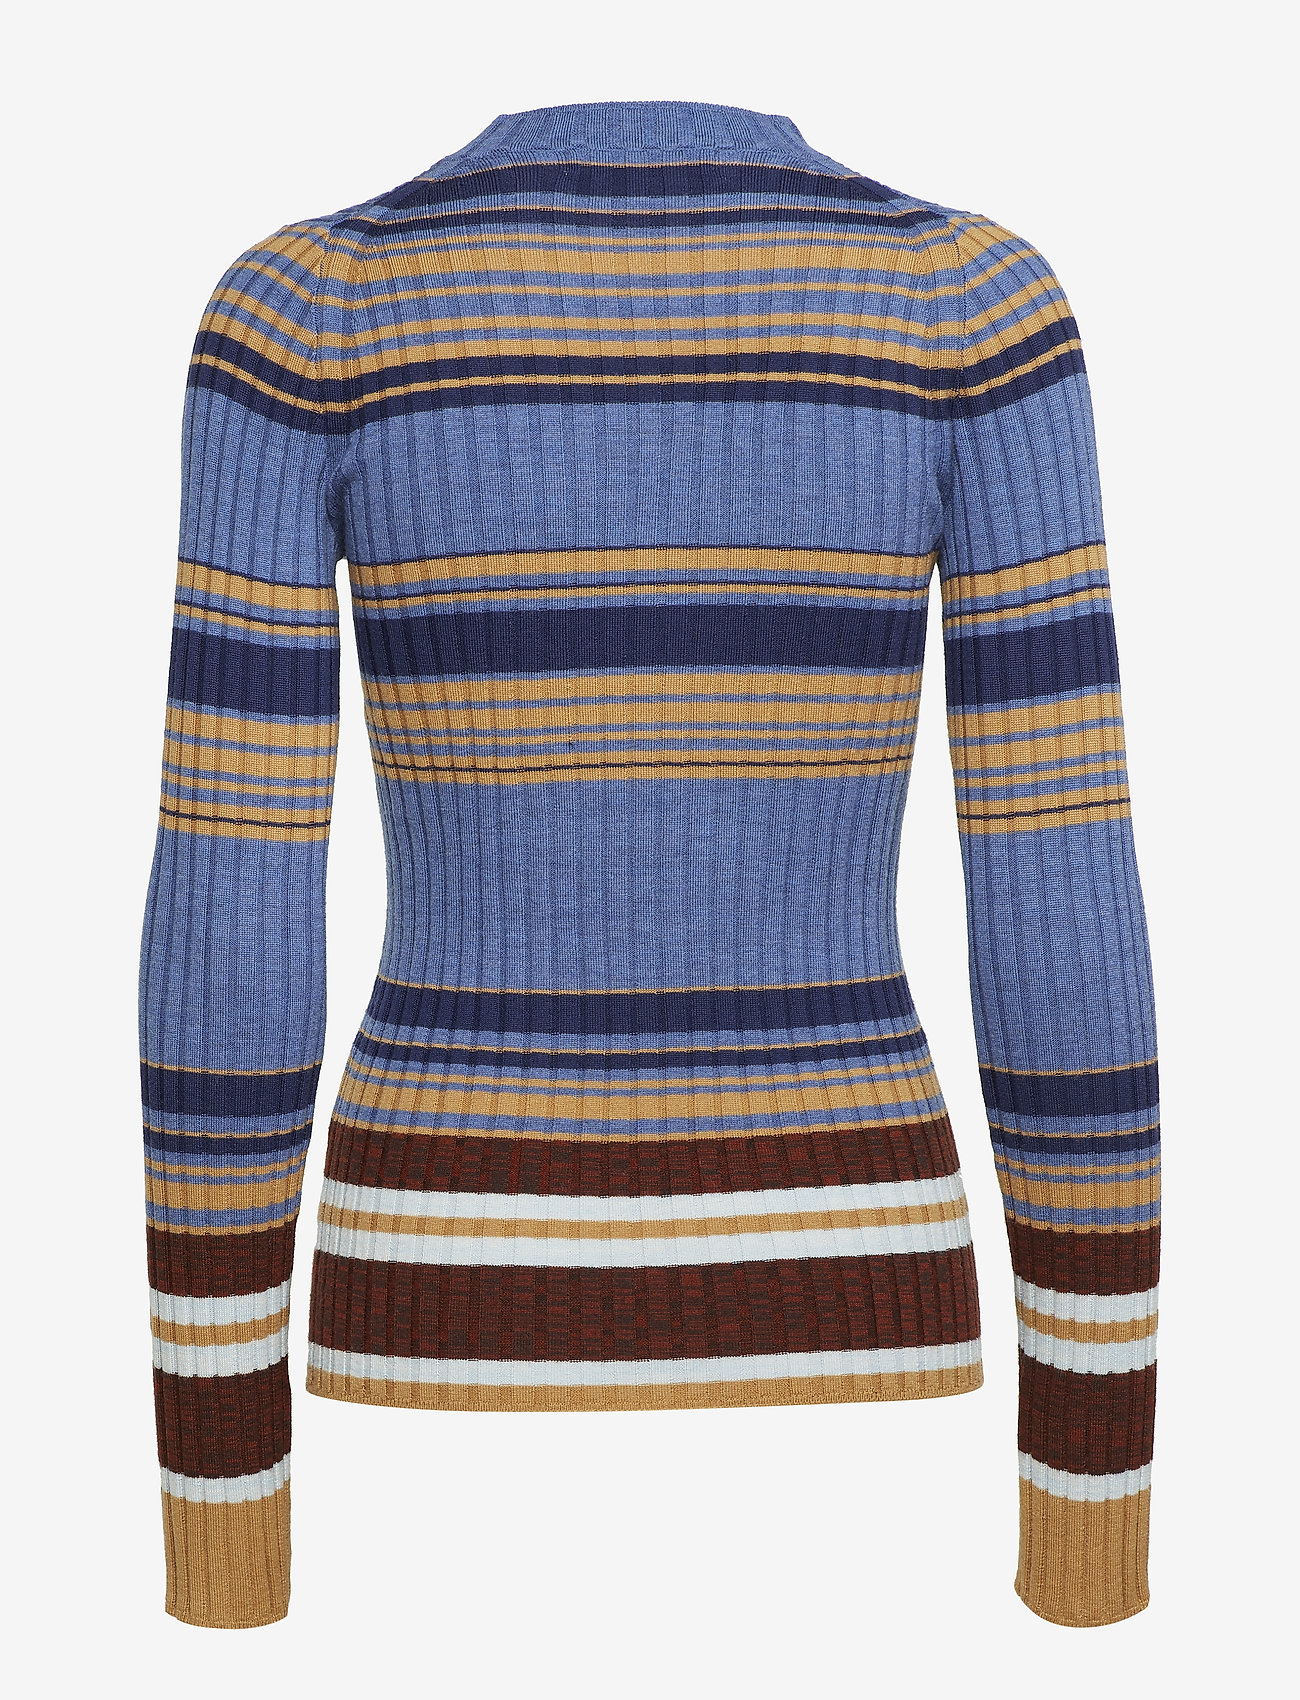 Cathrine Hammel Weave Striped Sweater - Stickat Thunder Blue Stripes